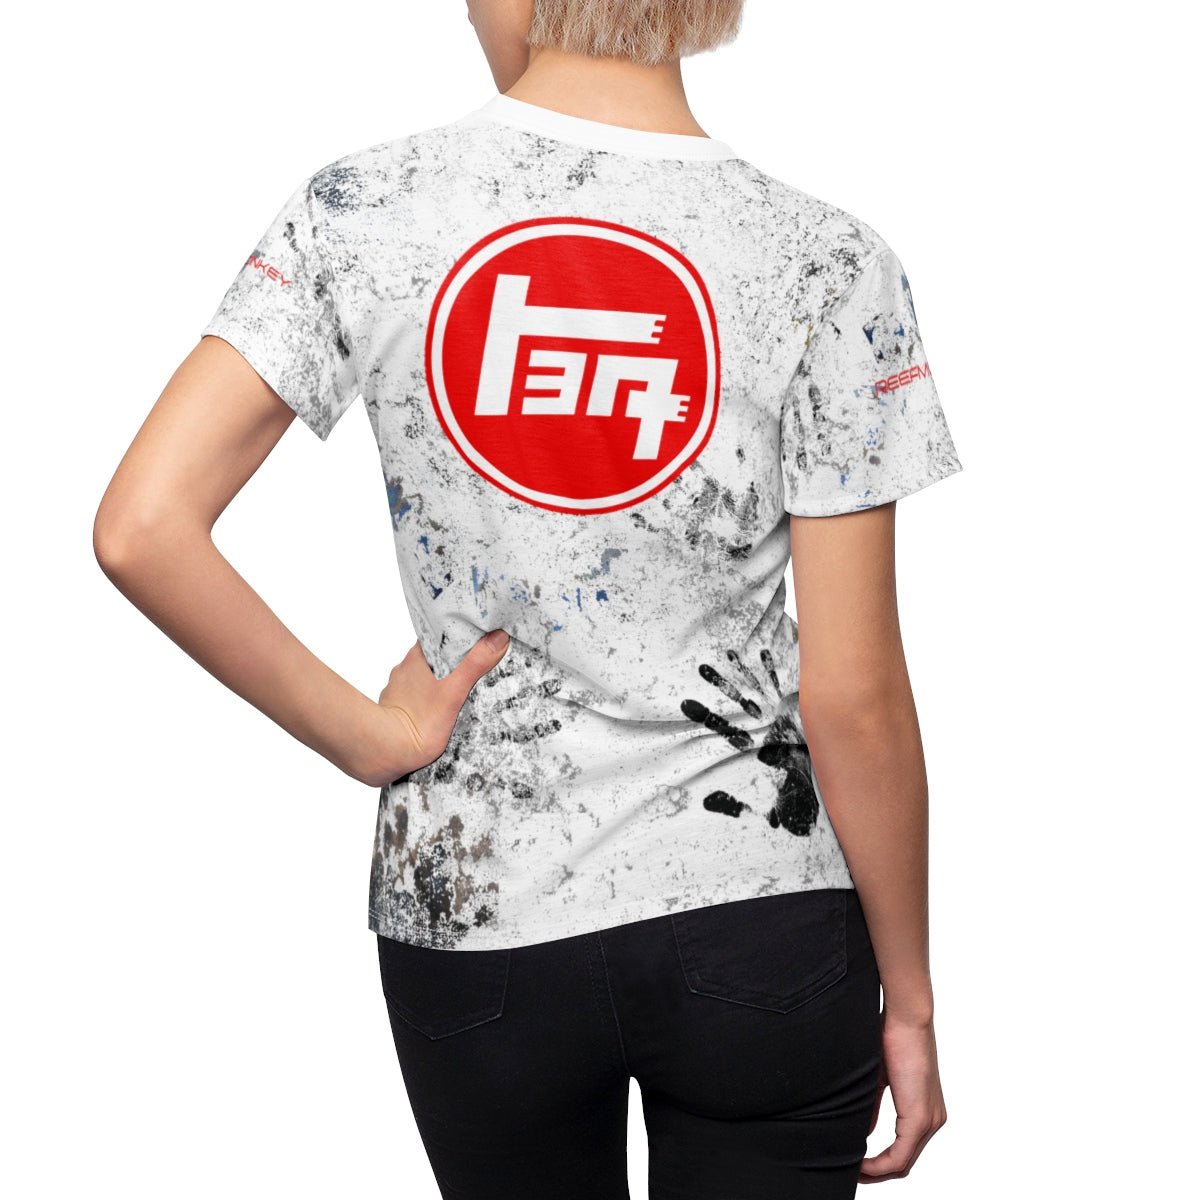 TEQ 4WD Toyota Dirty Shirt for women AOP Cut and Sew- by Reefmonkey